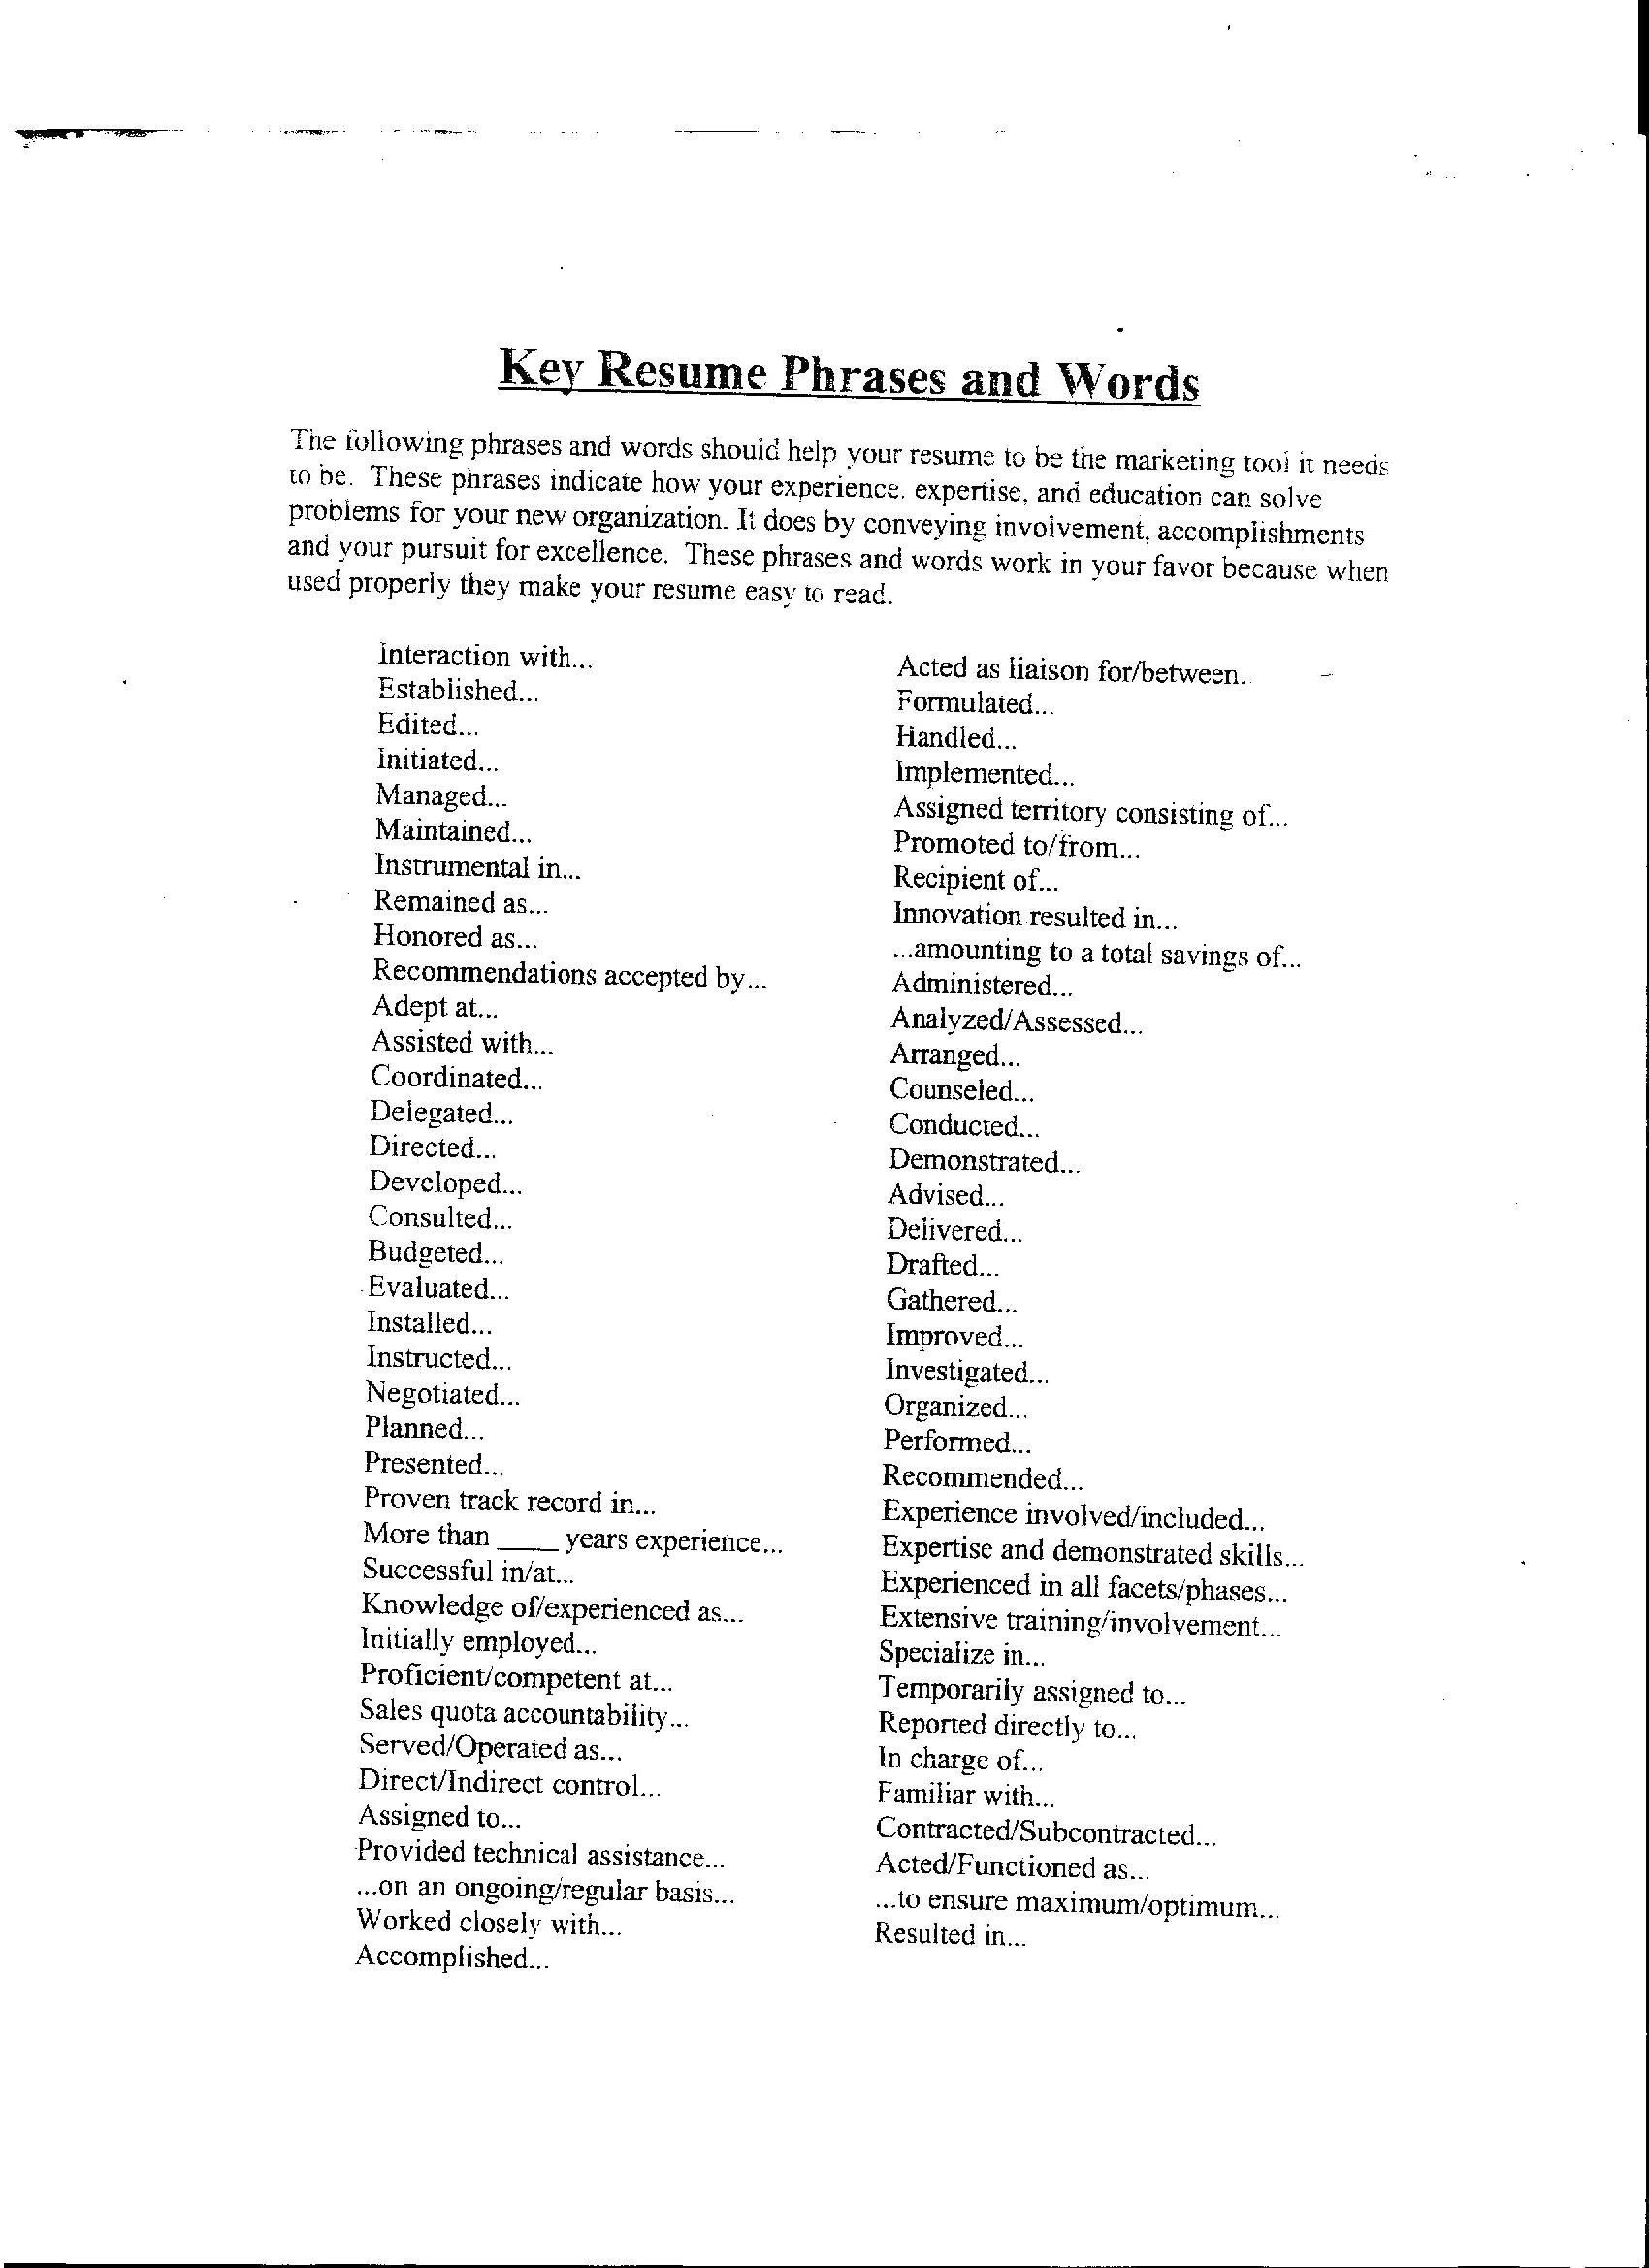 Resume Words To Use Exquisite Top Resume Words The 15 Best And Worst To Use On Resumes